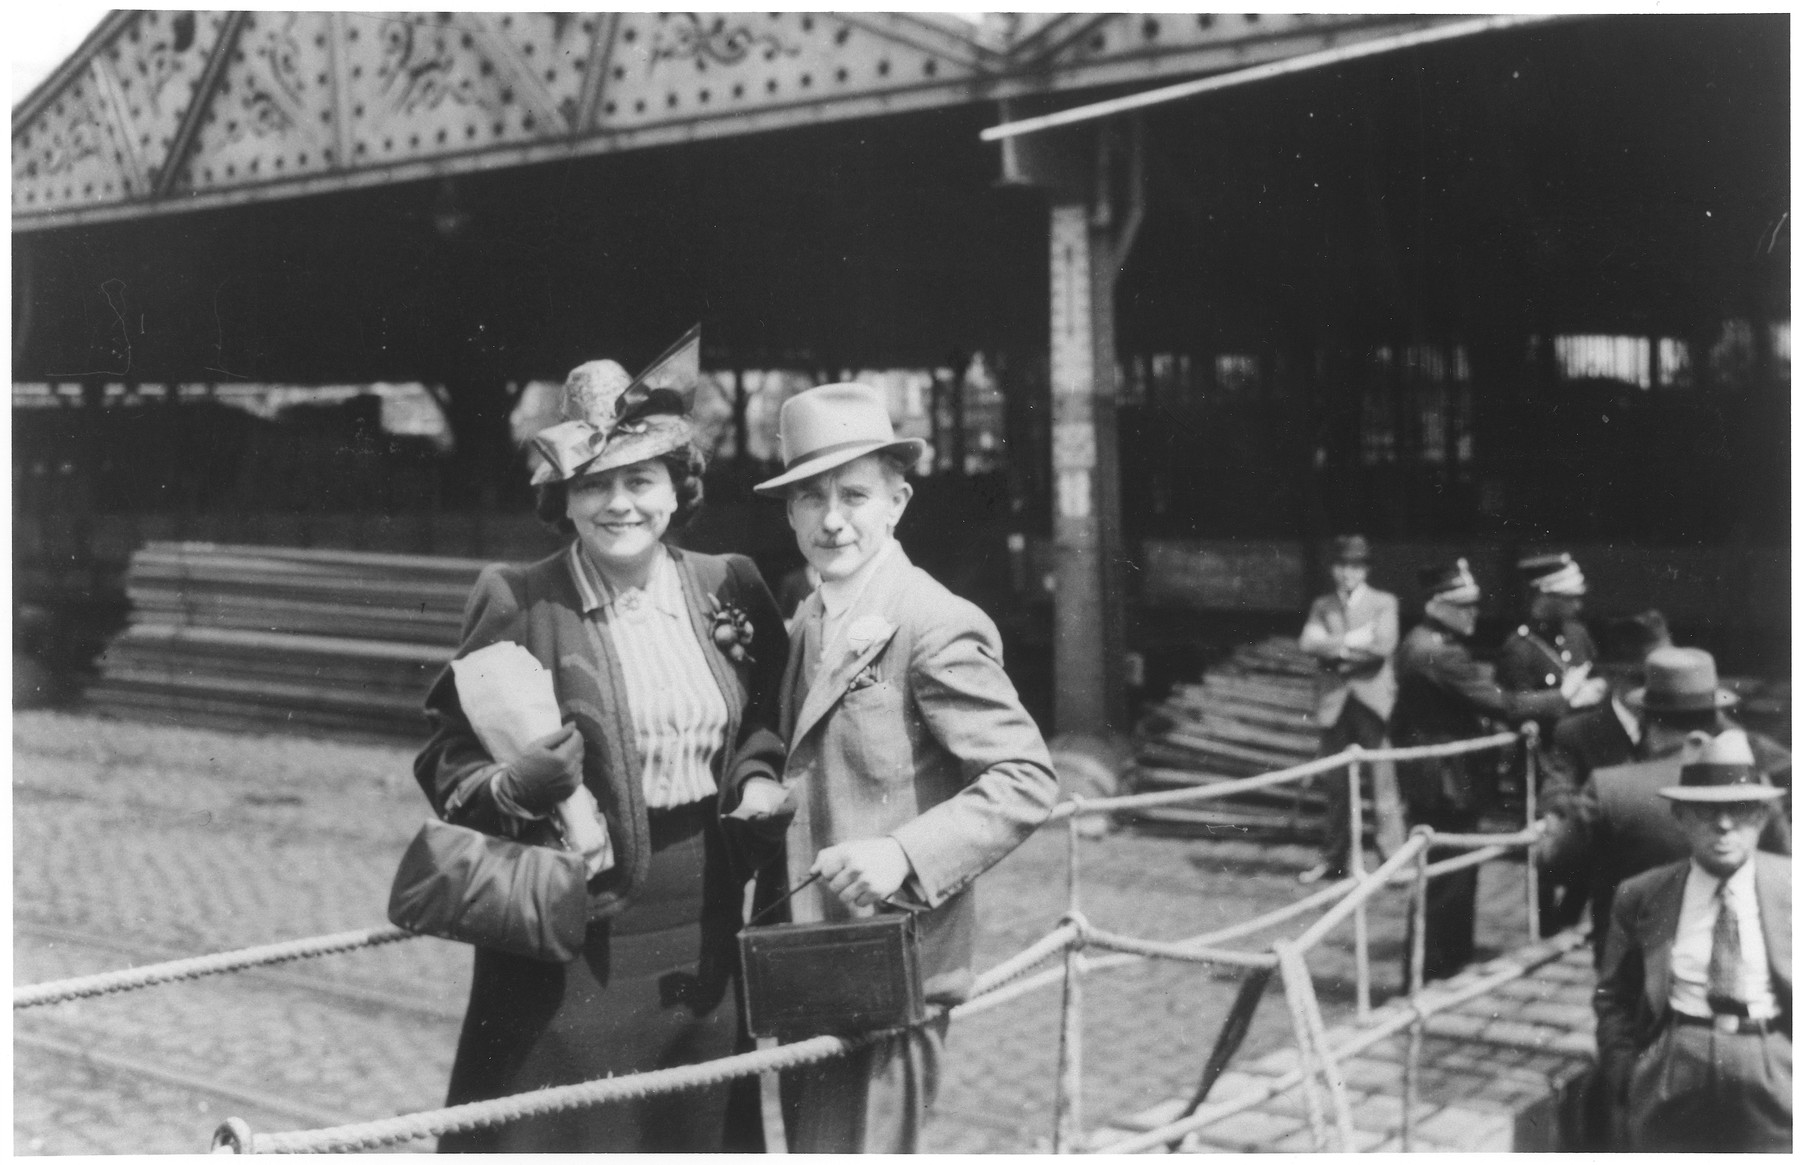 A Jewish refugee couple poses on the gangway of the MS St. Louis as they disembark from the ship in Antwerp.